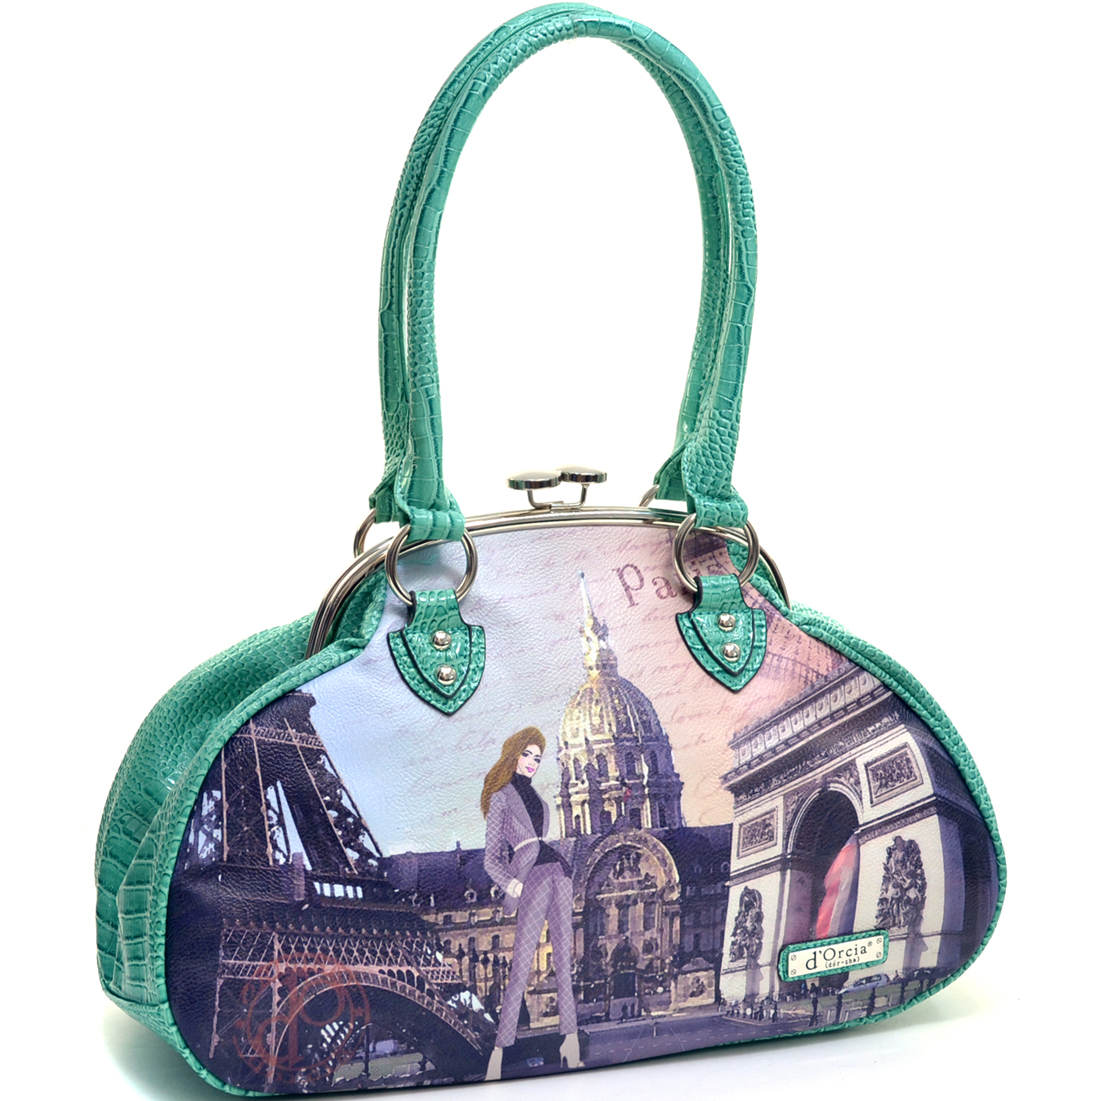 Snap Top Paris Print Baguette Tote with Flat Bottom